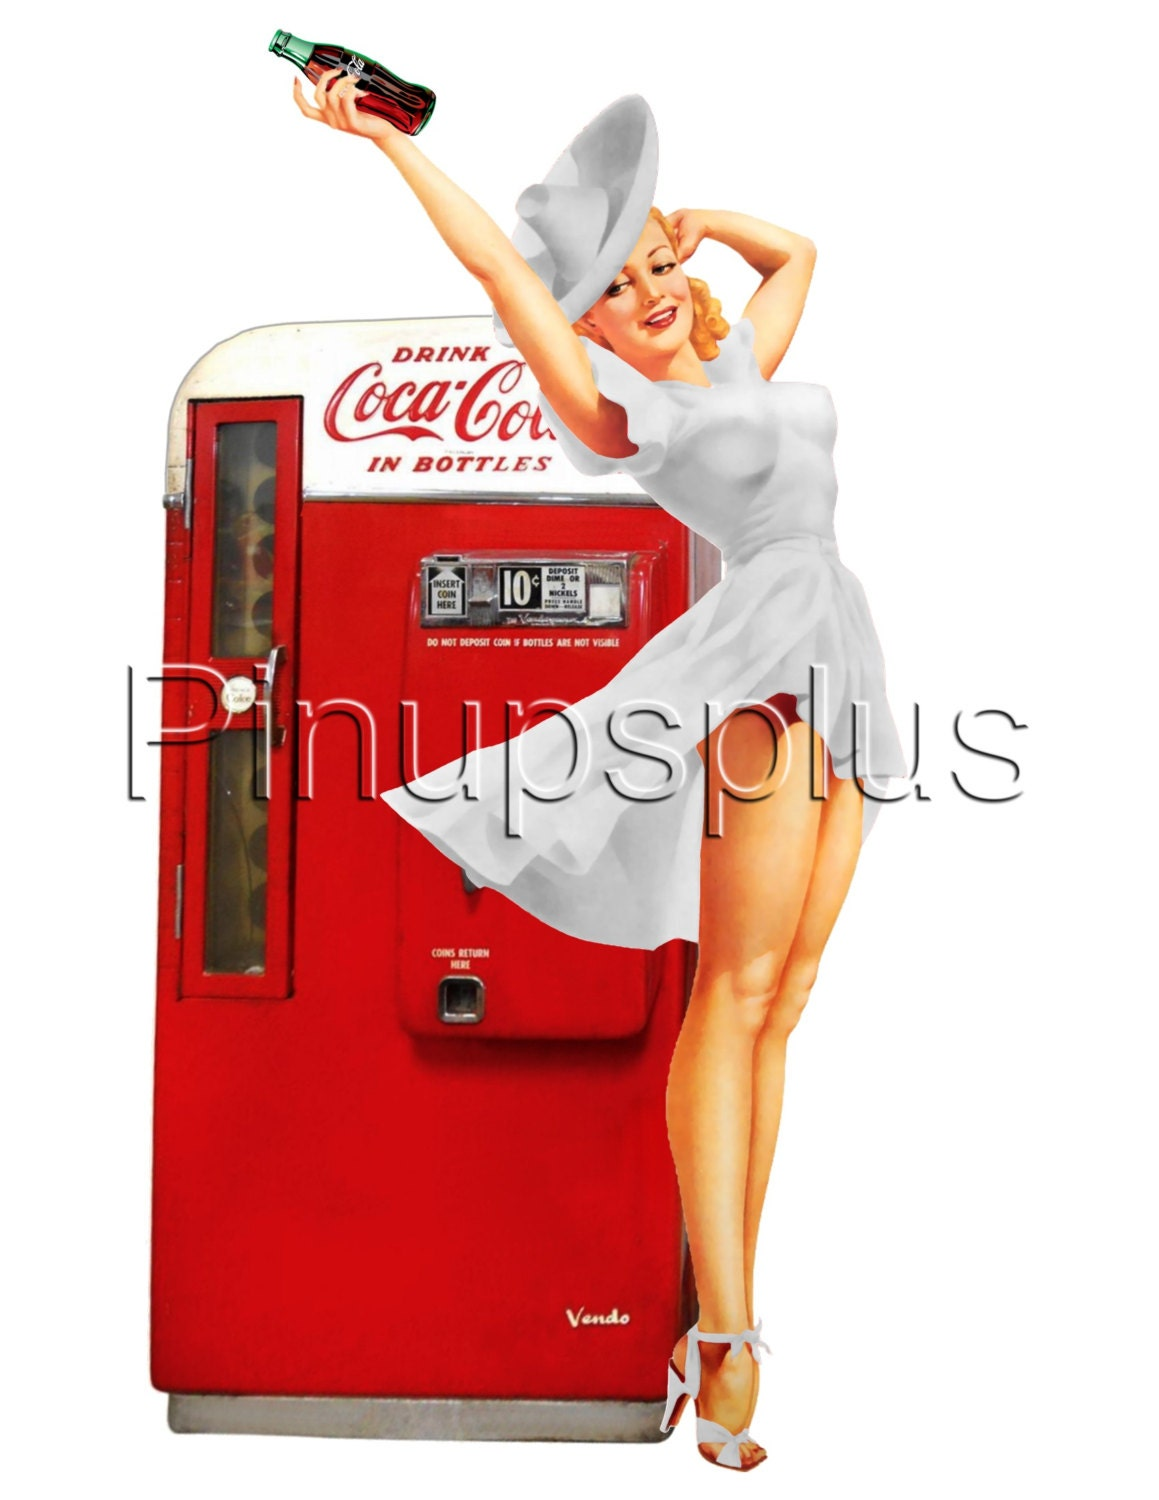 retro soda machine